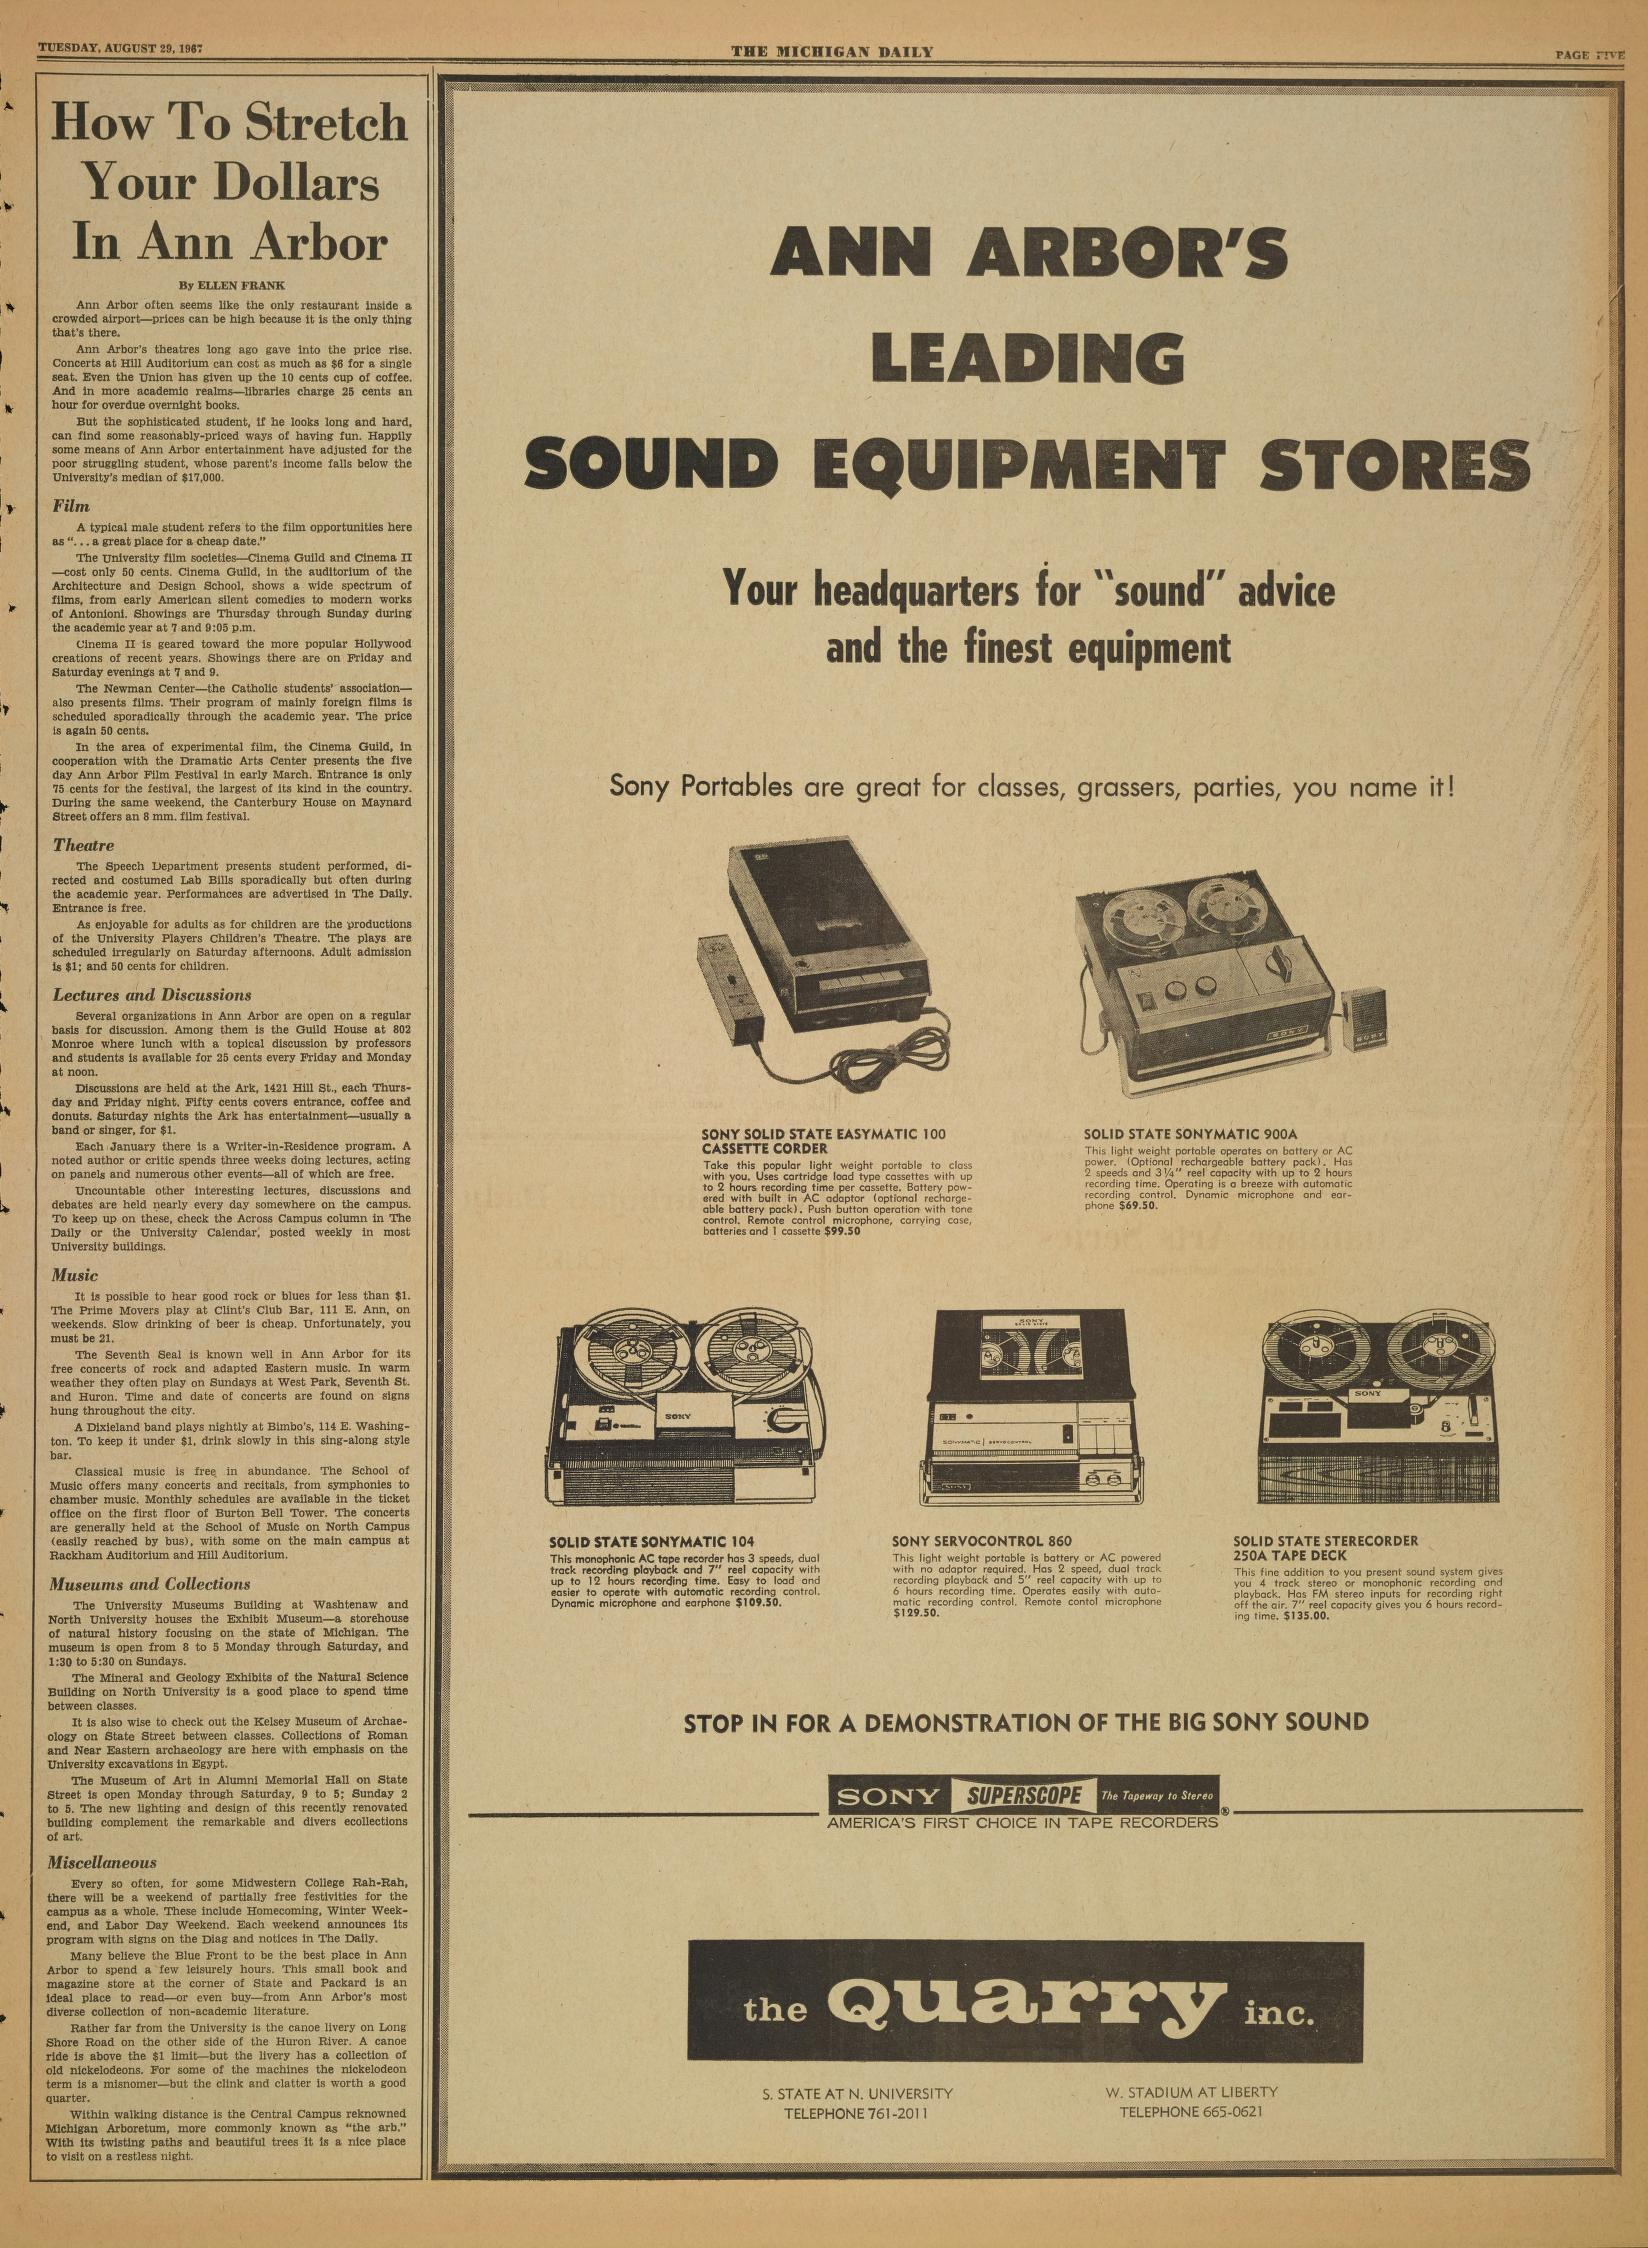 Michigan Daily Digital Archives August 29 1967 Vol 78 Iss 1 Telephone Record Control Download This Page